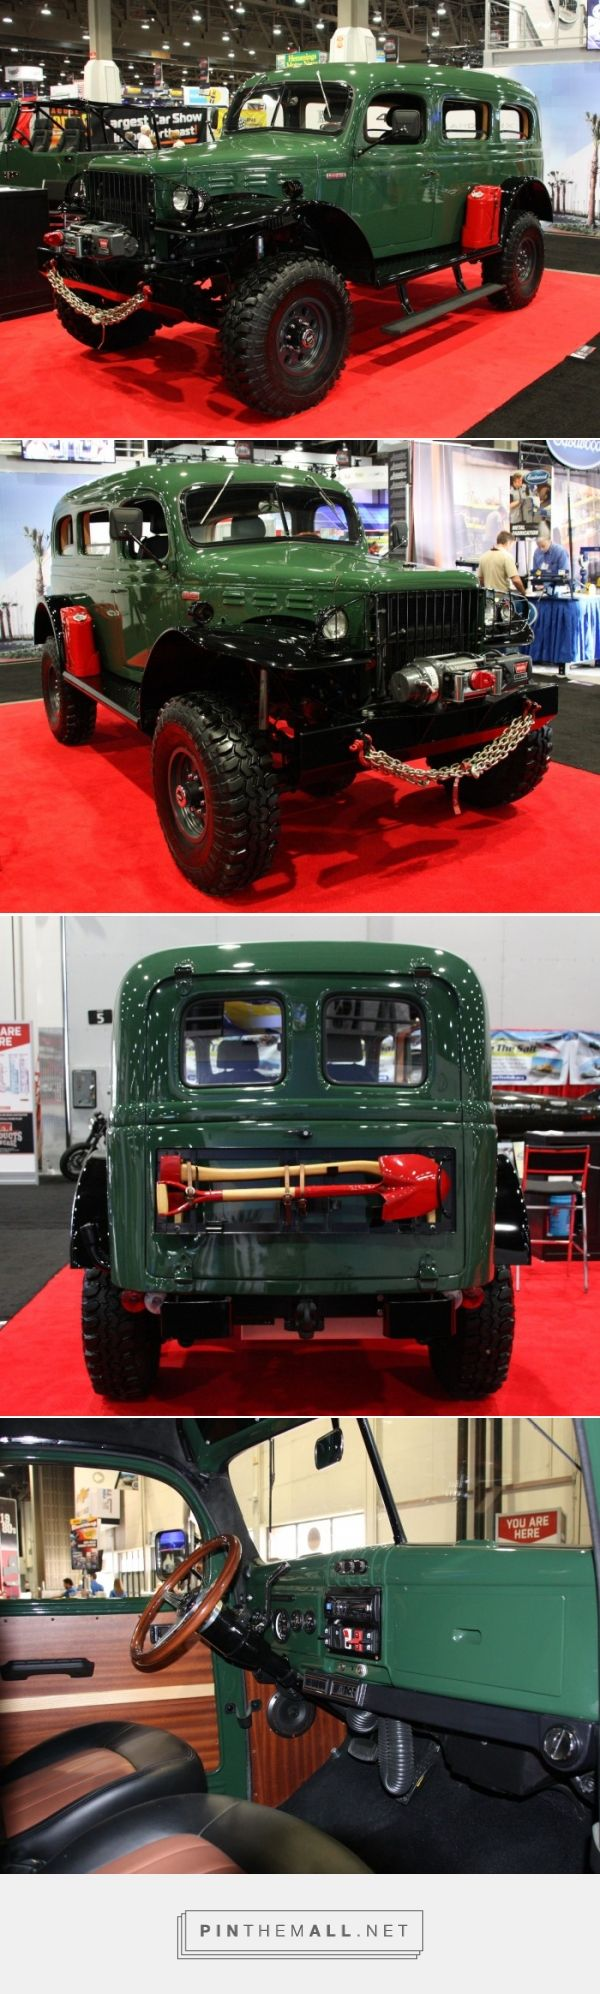 """Wish you could buy a modern Dodge Power Wagon? Wish no more. Power comes from the customer's choice of a 6.2-liter, 430-horsepower Chevrolet LS3 V-8 (to which purists would cry """"blasphemy"""") or a 3.9-liter inline six four-cylinder Cummins turbo diesel, which delivers 480 pound-feet of torque yet reportedly returns 24 MPG highway fuel economy. - created via https://pinthemall.net"""